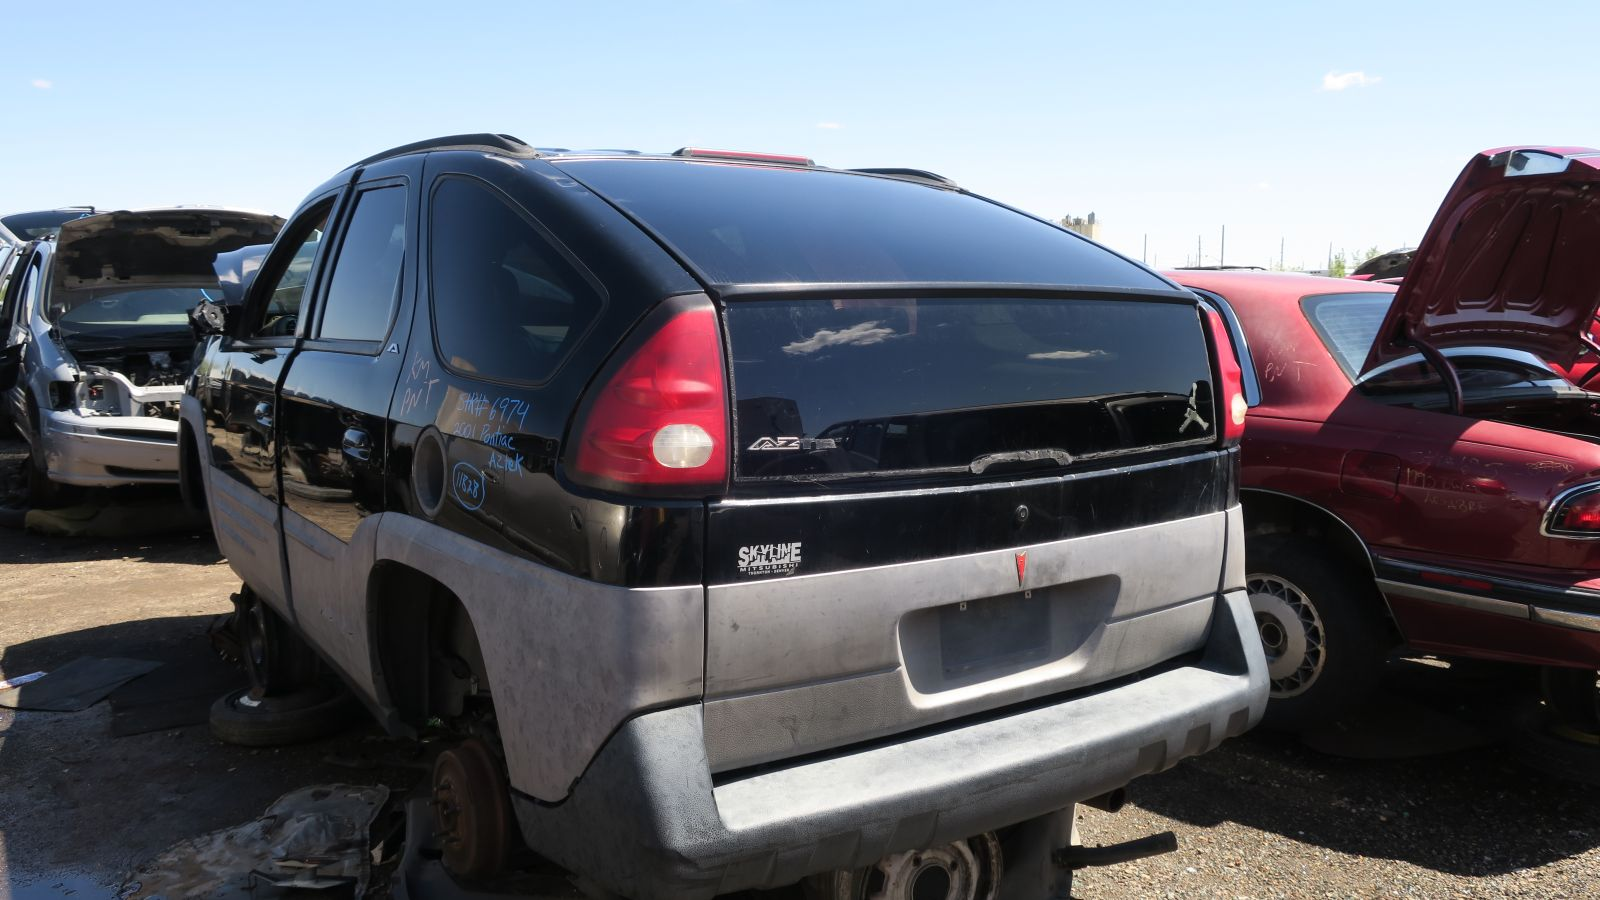 So it was a General Motors minivan-like vehicle cousin of the weird-looking Dustbusters of the 1990s with lots of useful features for those who did more ... & Junkyard Gem: 2001 Pontiac Aztek - Autoblog